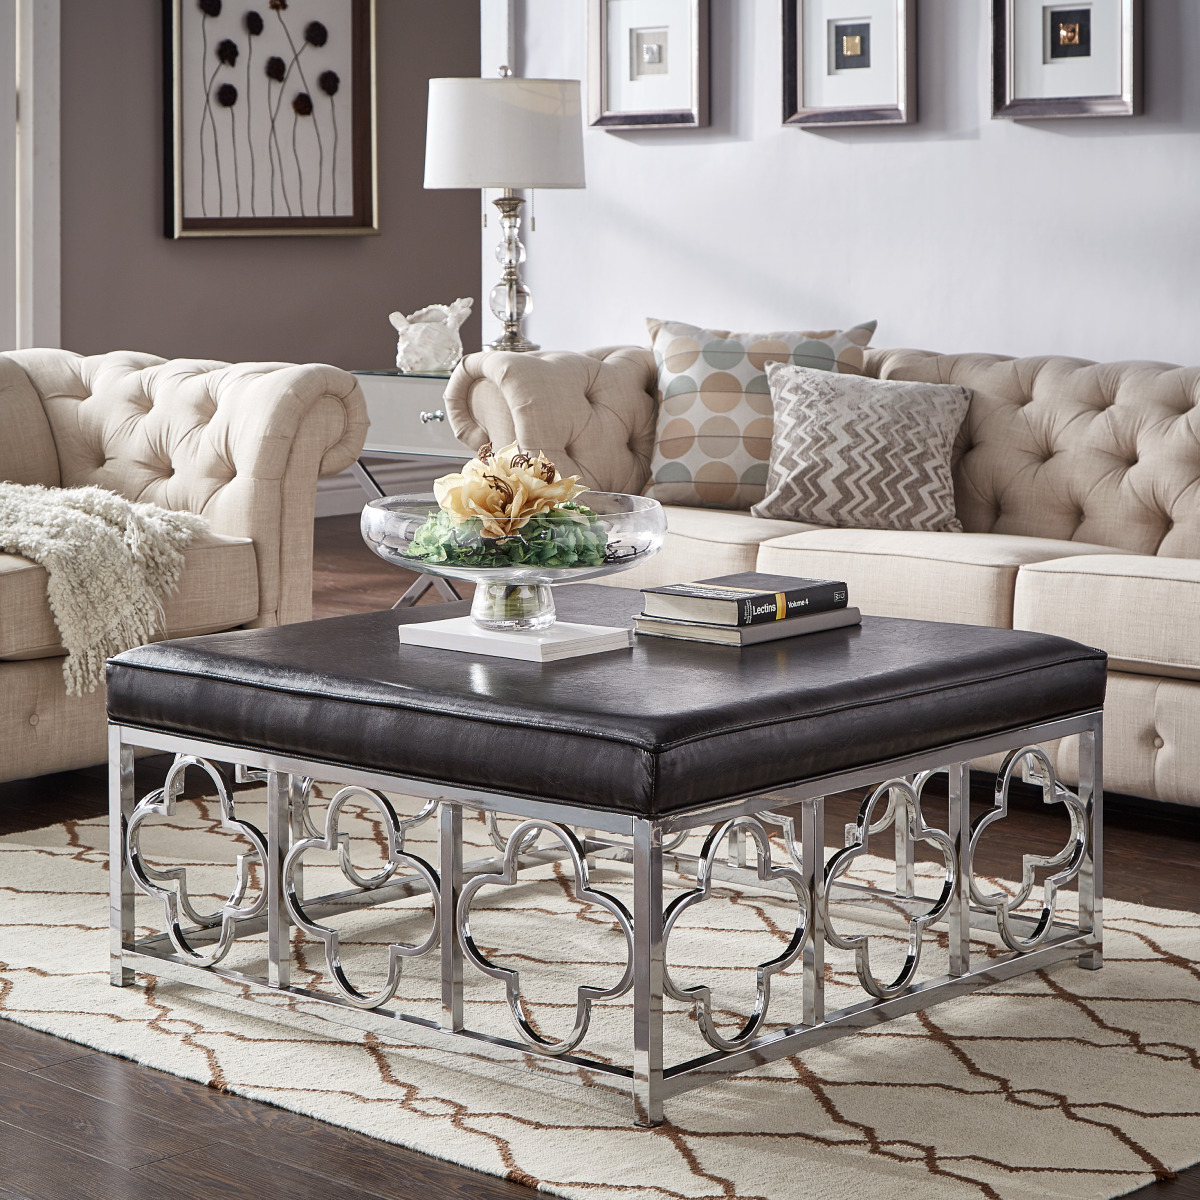 Square Ottoman Coffee Table Weston Home Libby Smooth Top Cushion Chrome Quatrefoil Base Square Ottoman Coffee Table Multiple Colors